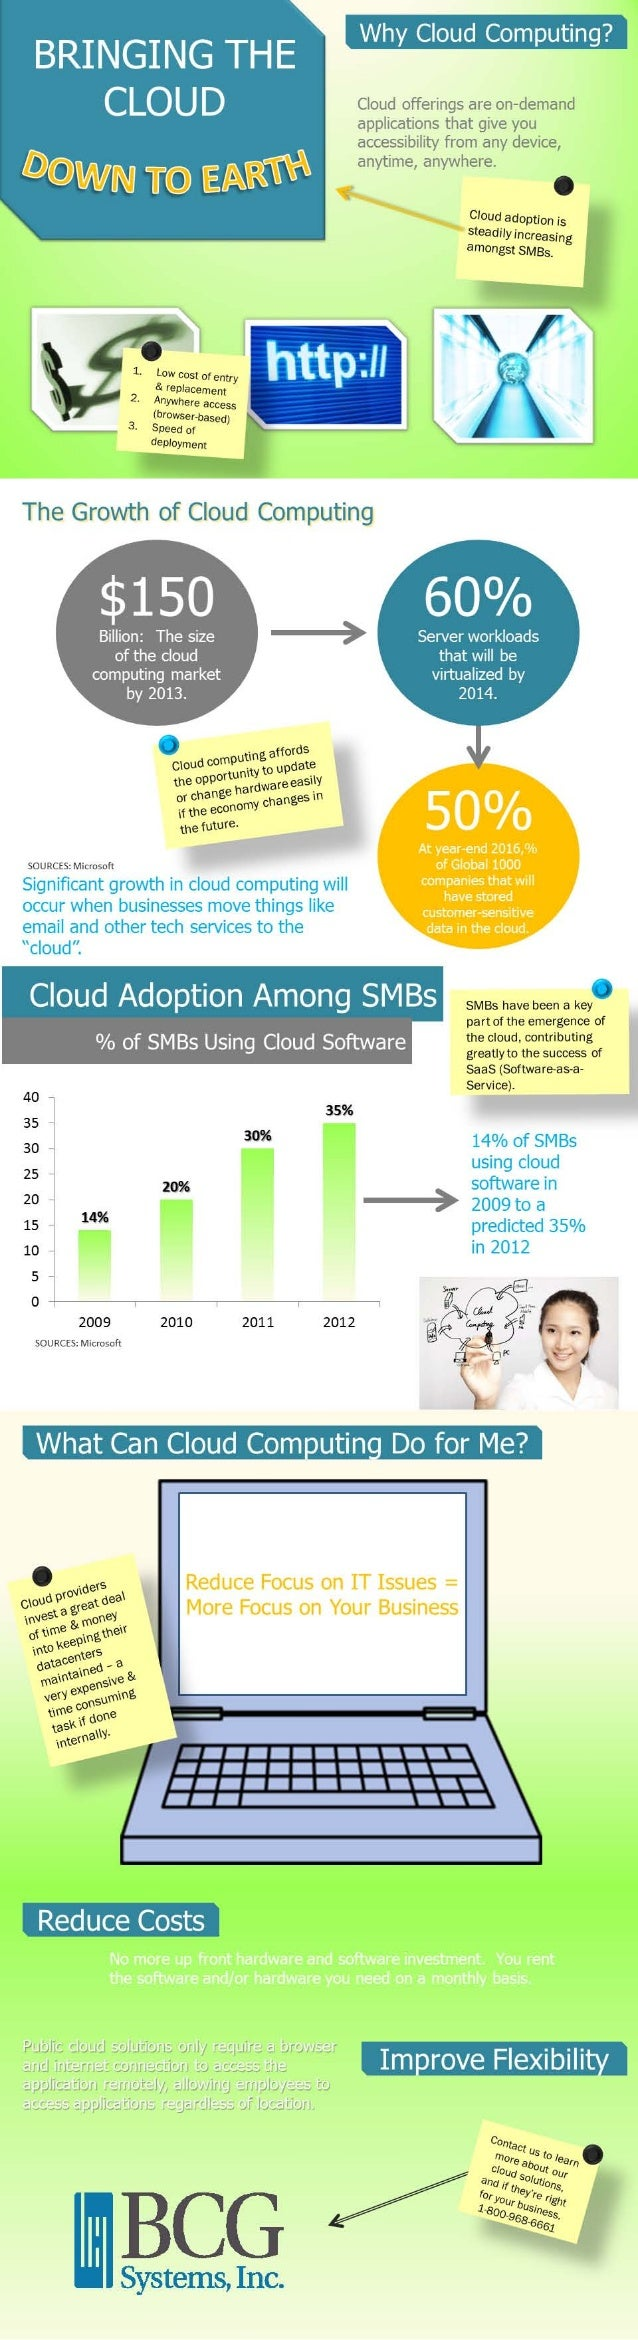 Bringing the Cloud Down to Earth - Why Cloud Computing